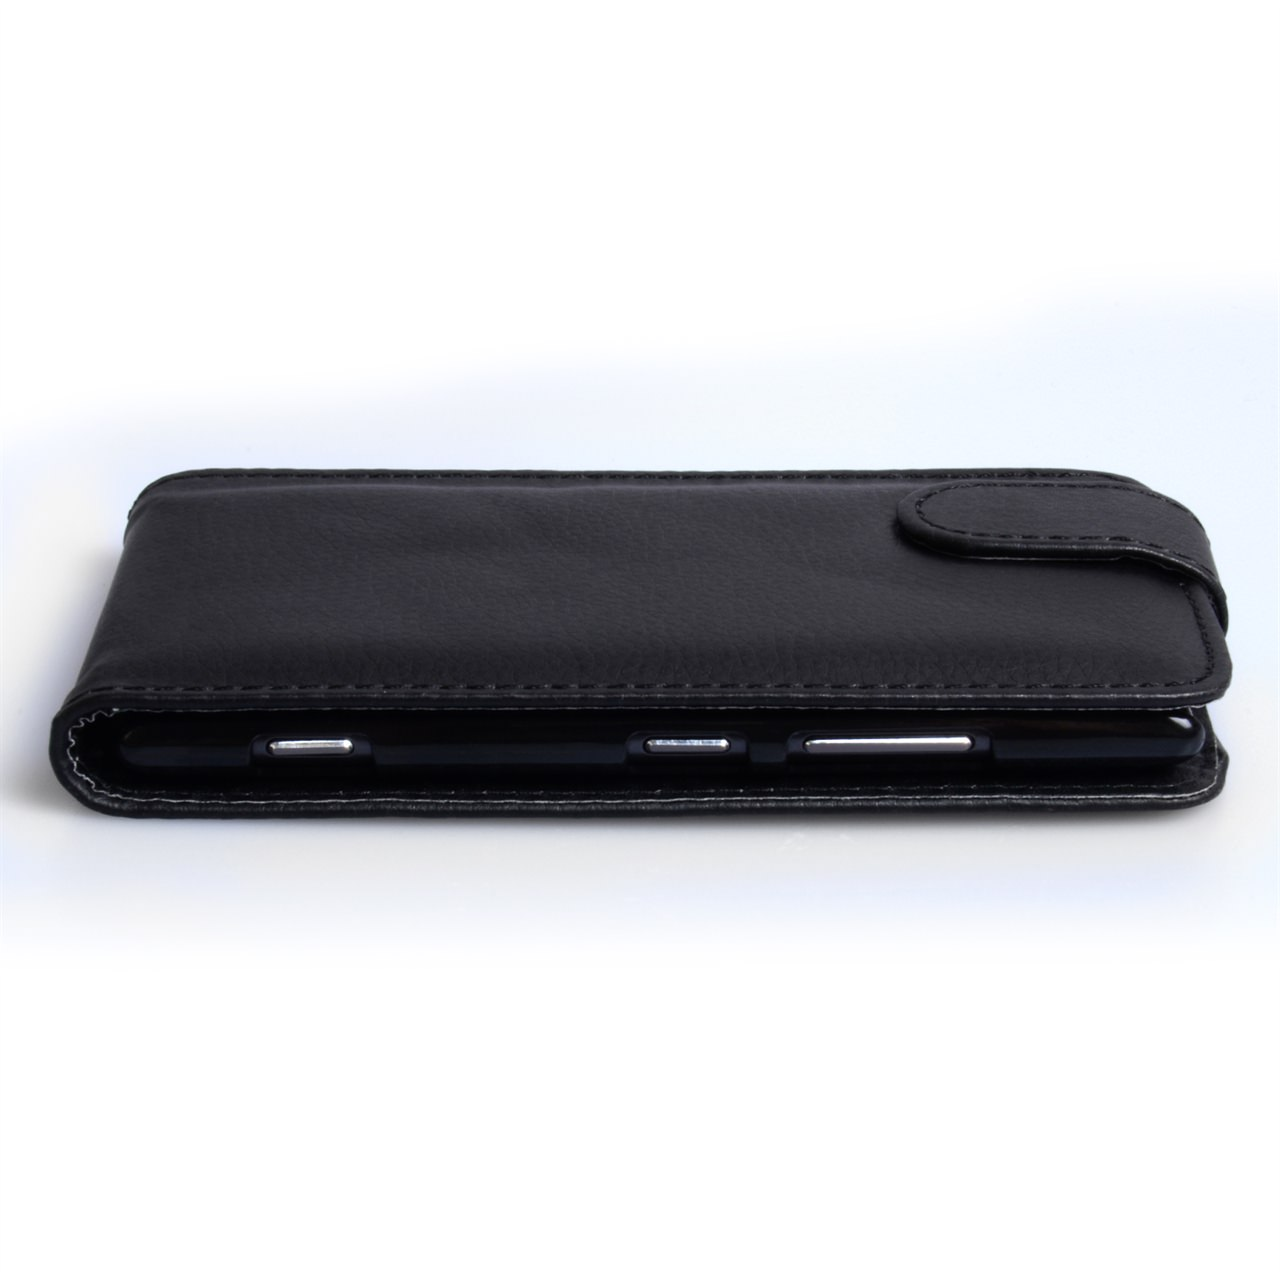 YouSave Accessories Nokia Lumia 925 Leather Effect Flip Case - Black